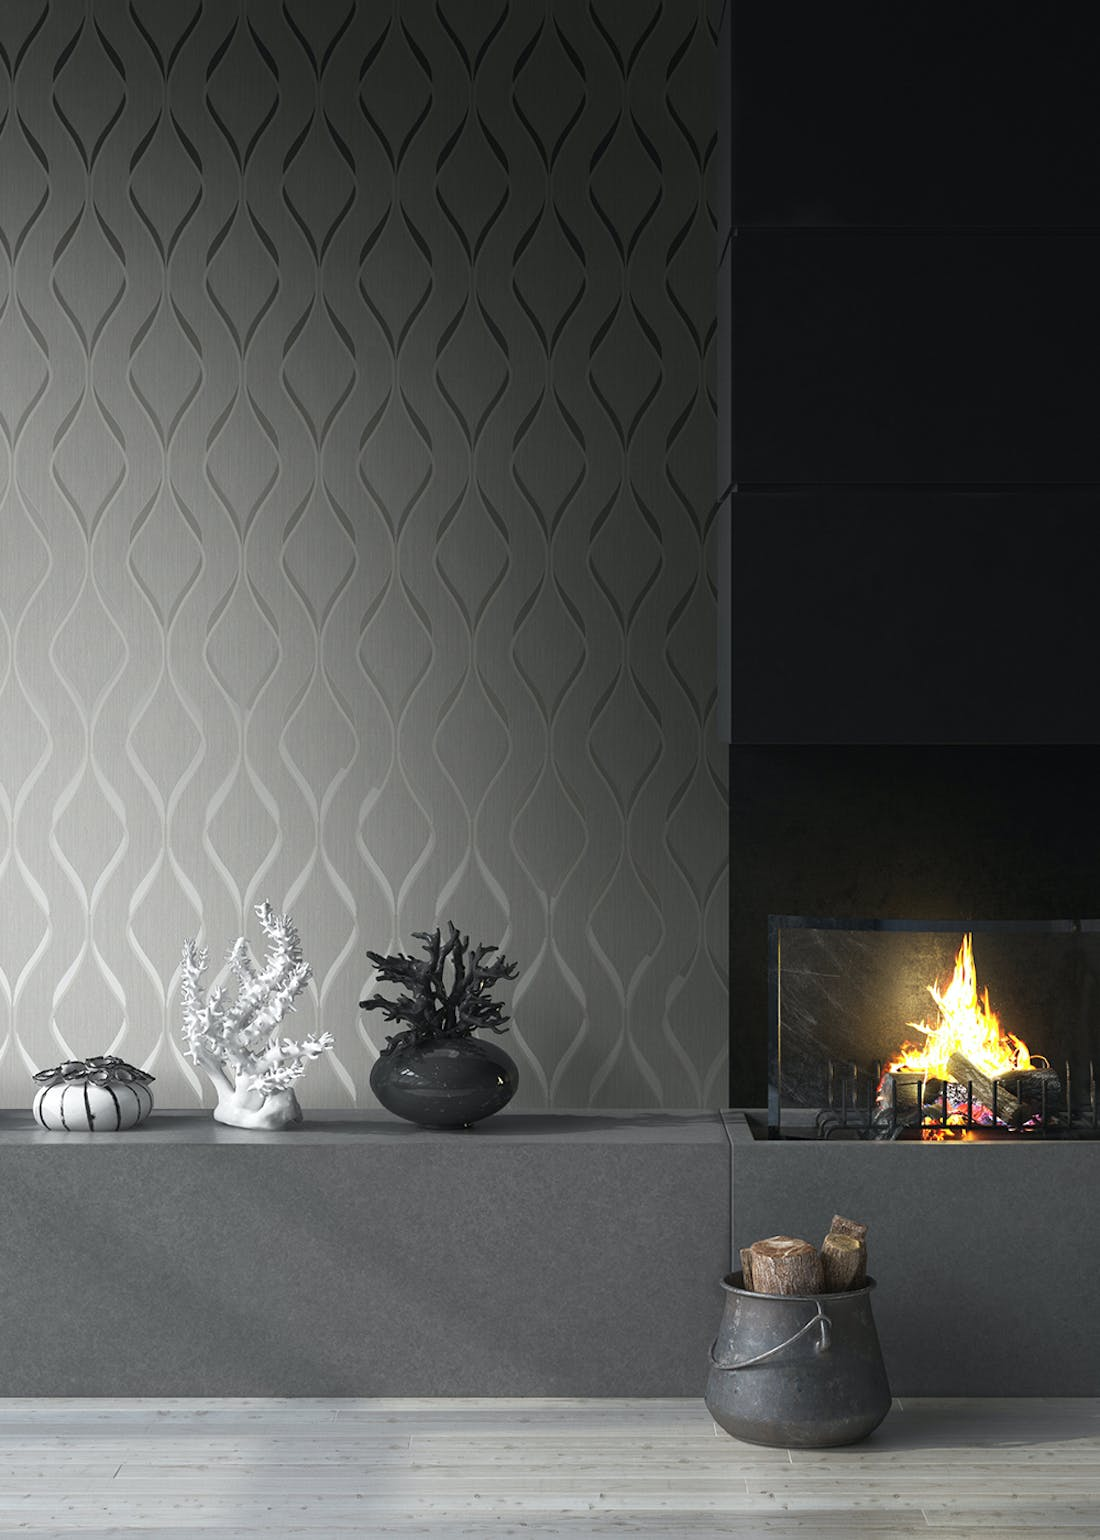 Muriva Indra Wave Grey Wallpaper (10.05m x 53cm)